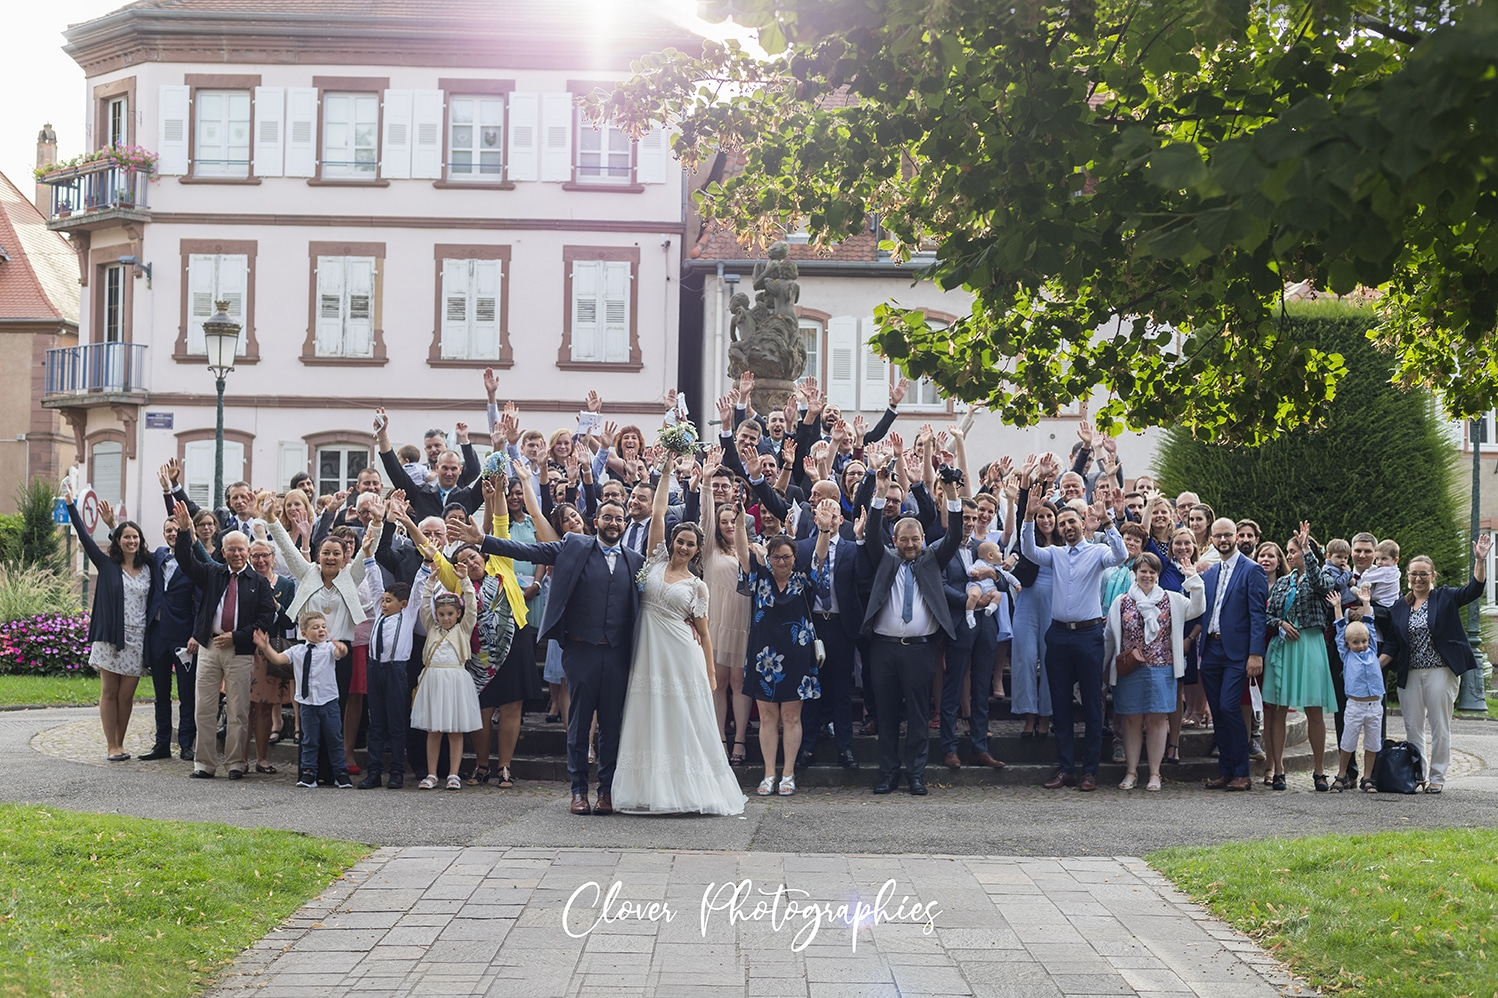 photographe professionnelle - photos de mariage - alsace moselle - clover photographies